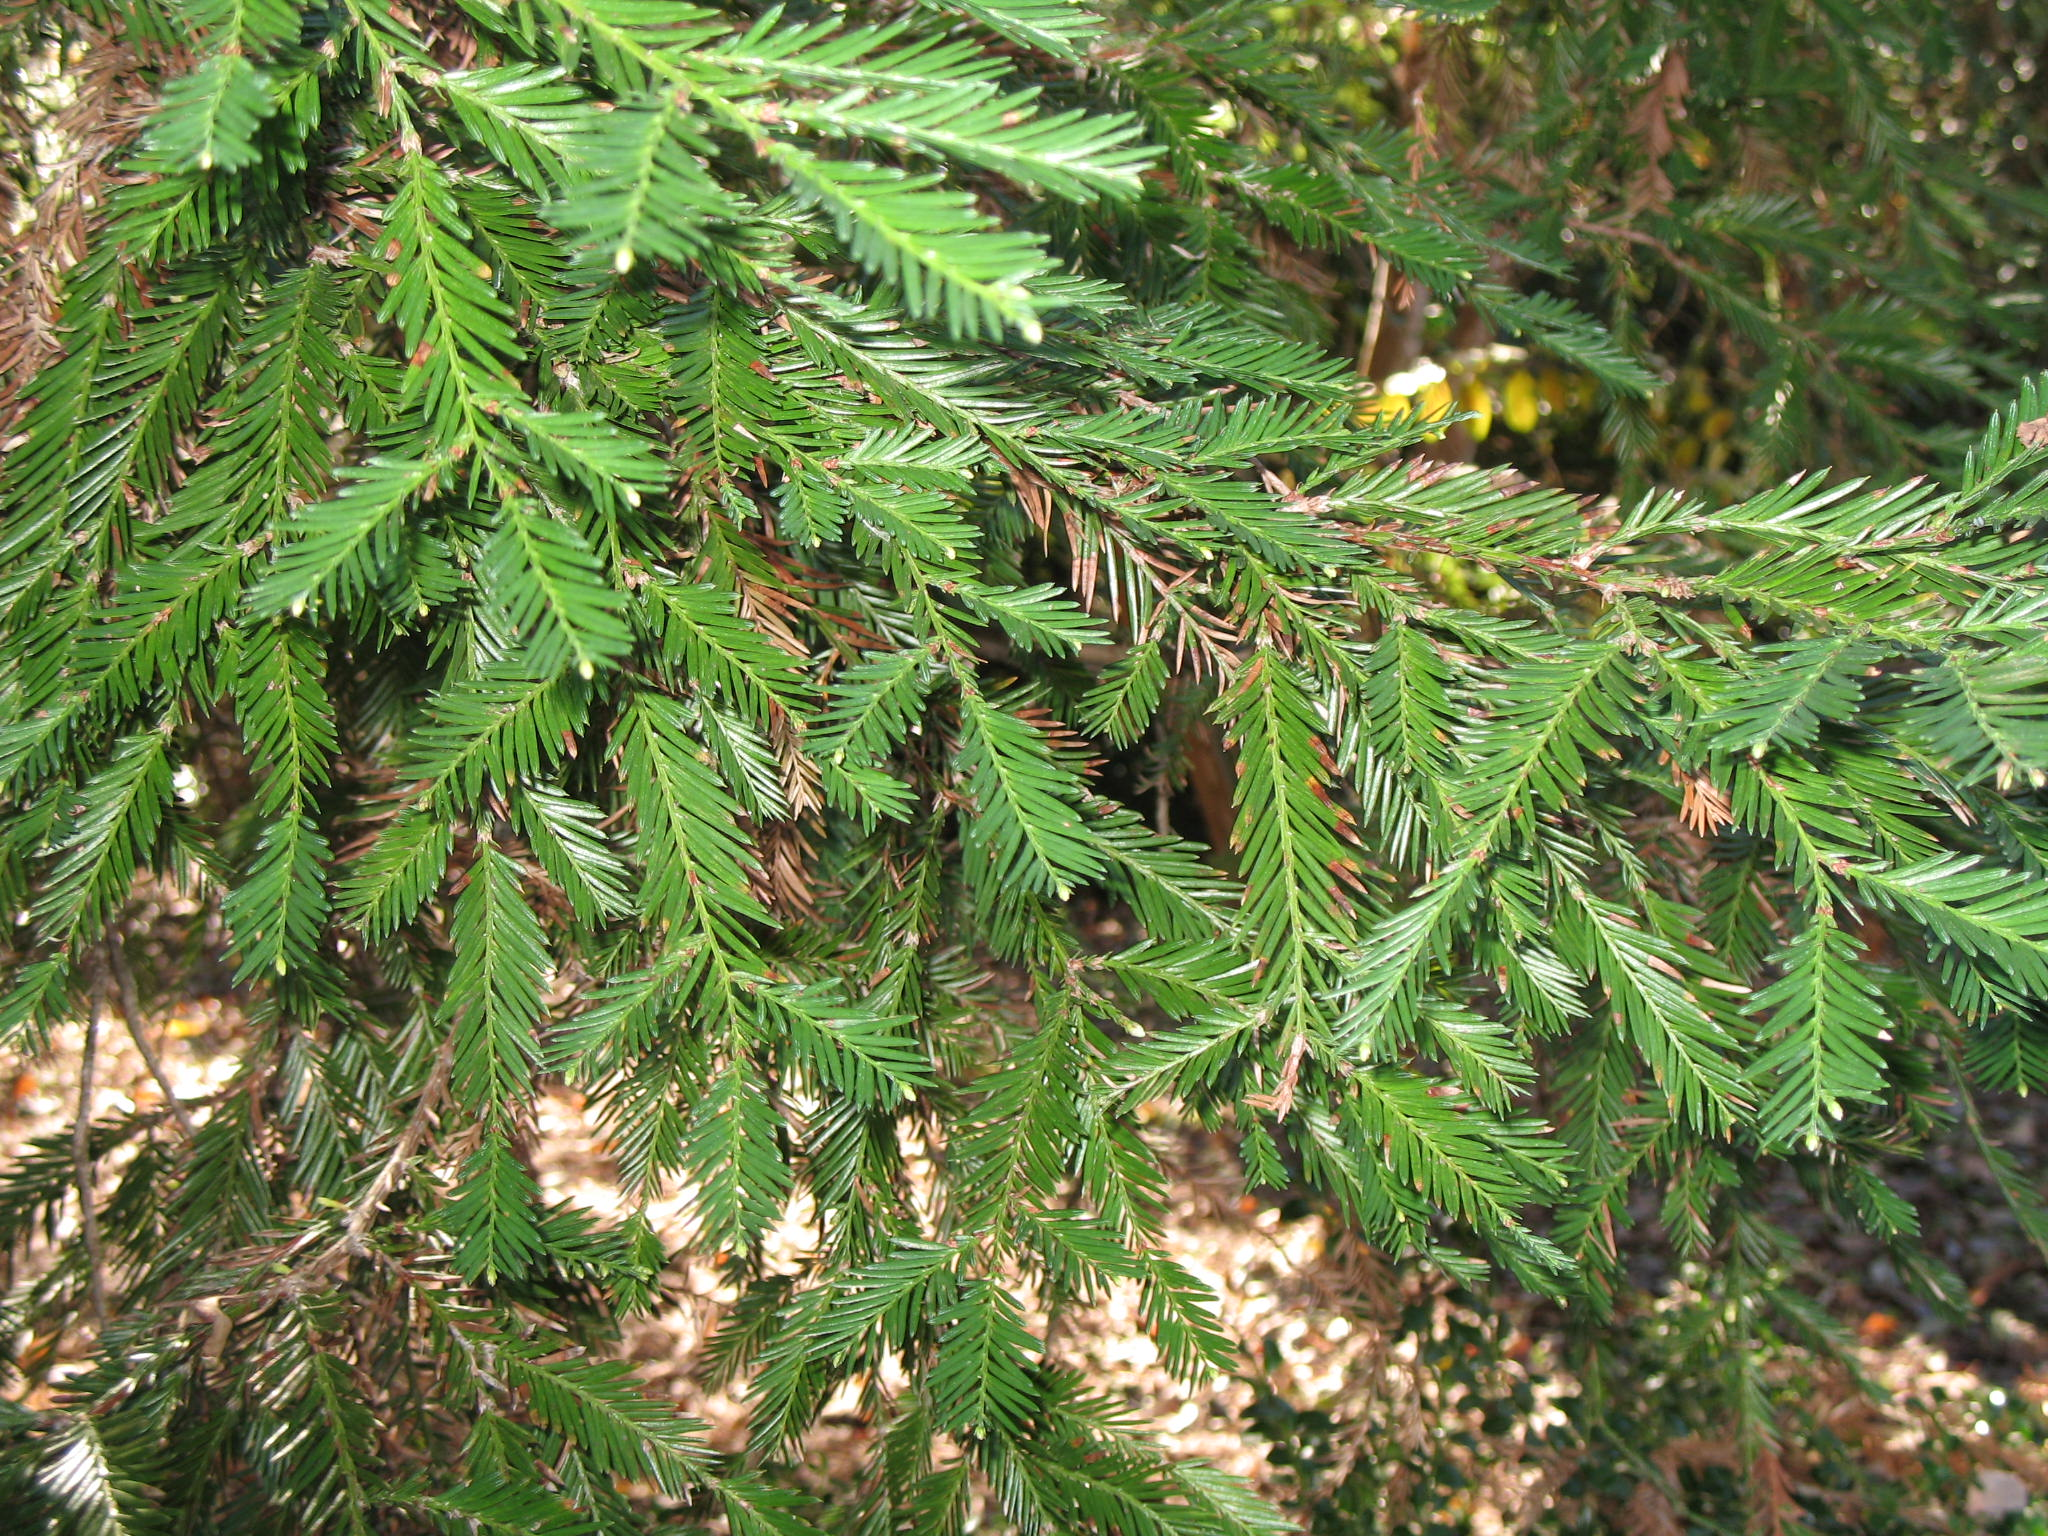 Sequoia sempervirens  / Sequoia sempervirens